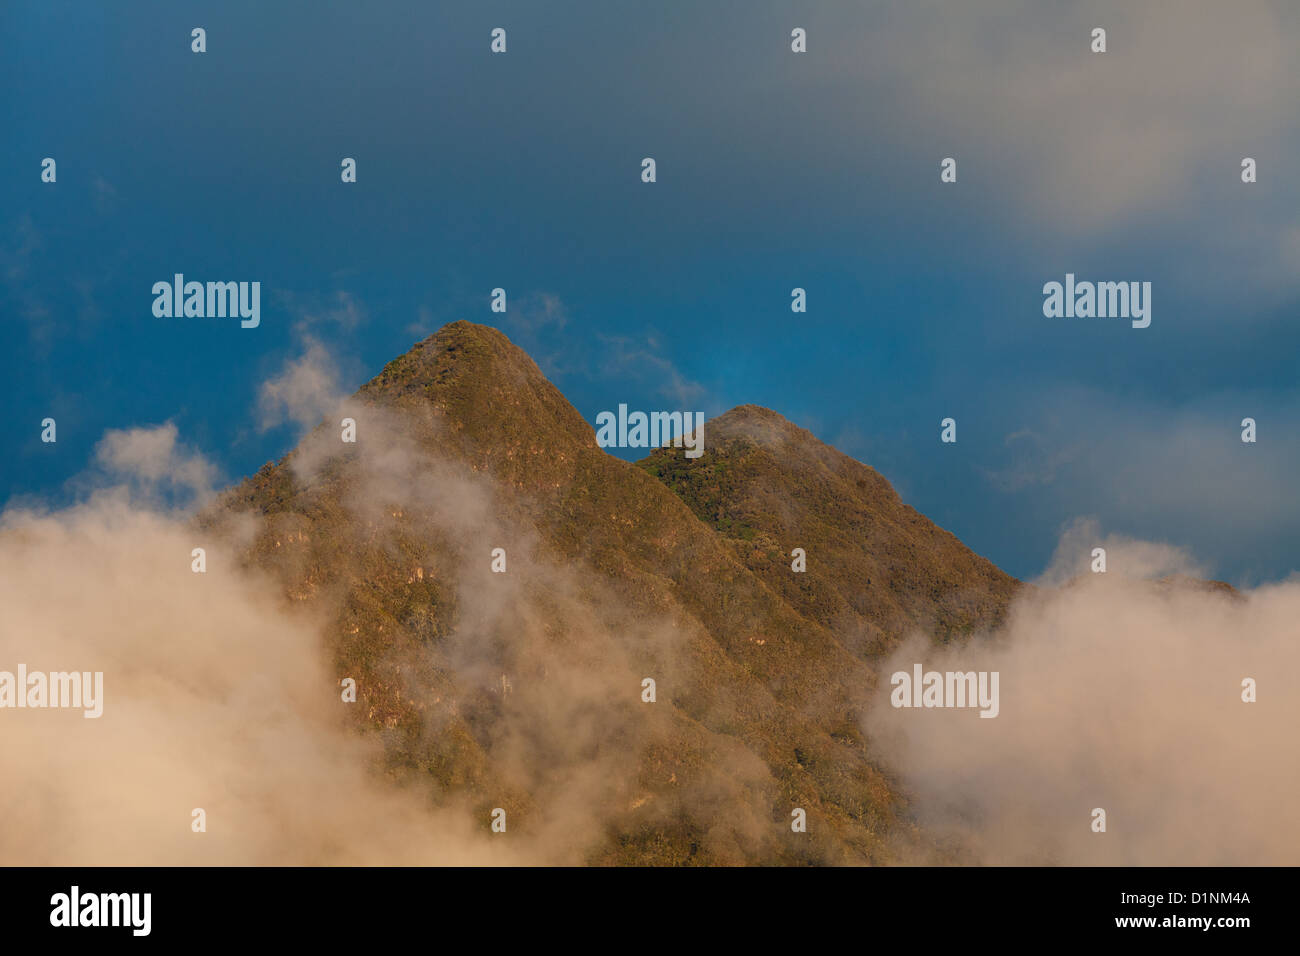 Evening light on two peaks in Volcan Baru national park, Chiriqui province, Republic of Panama. - Stock Image